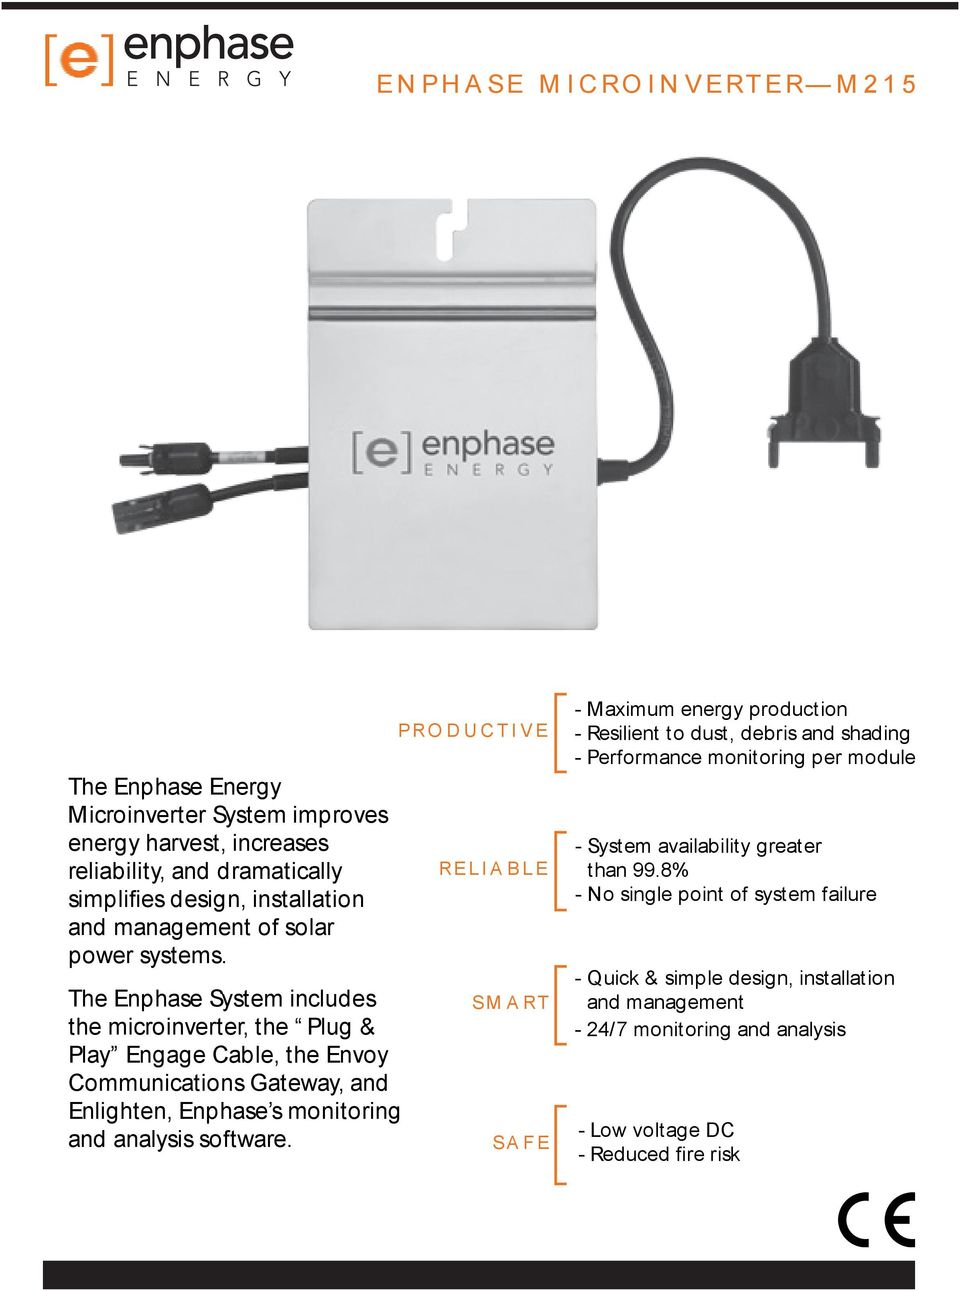 The Enphase System includes the microinverter, the Plug & Play Engage Cable, the Envoy Communications Gateway, and Enlighten, Enphase s monitoring and analysis software.